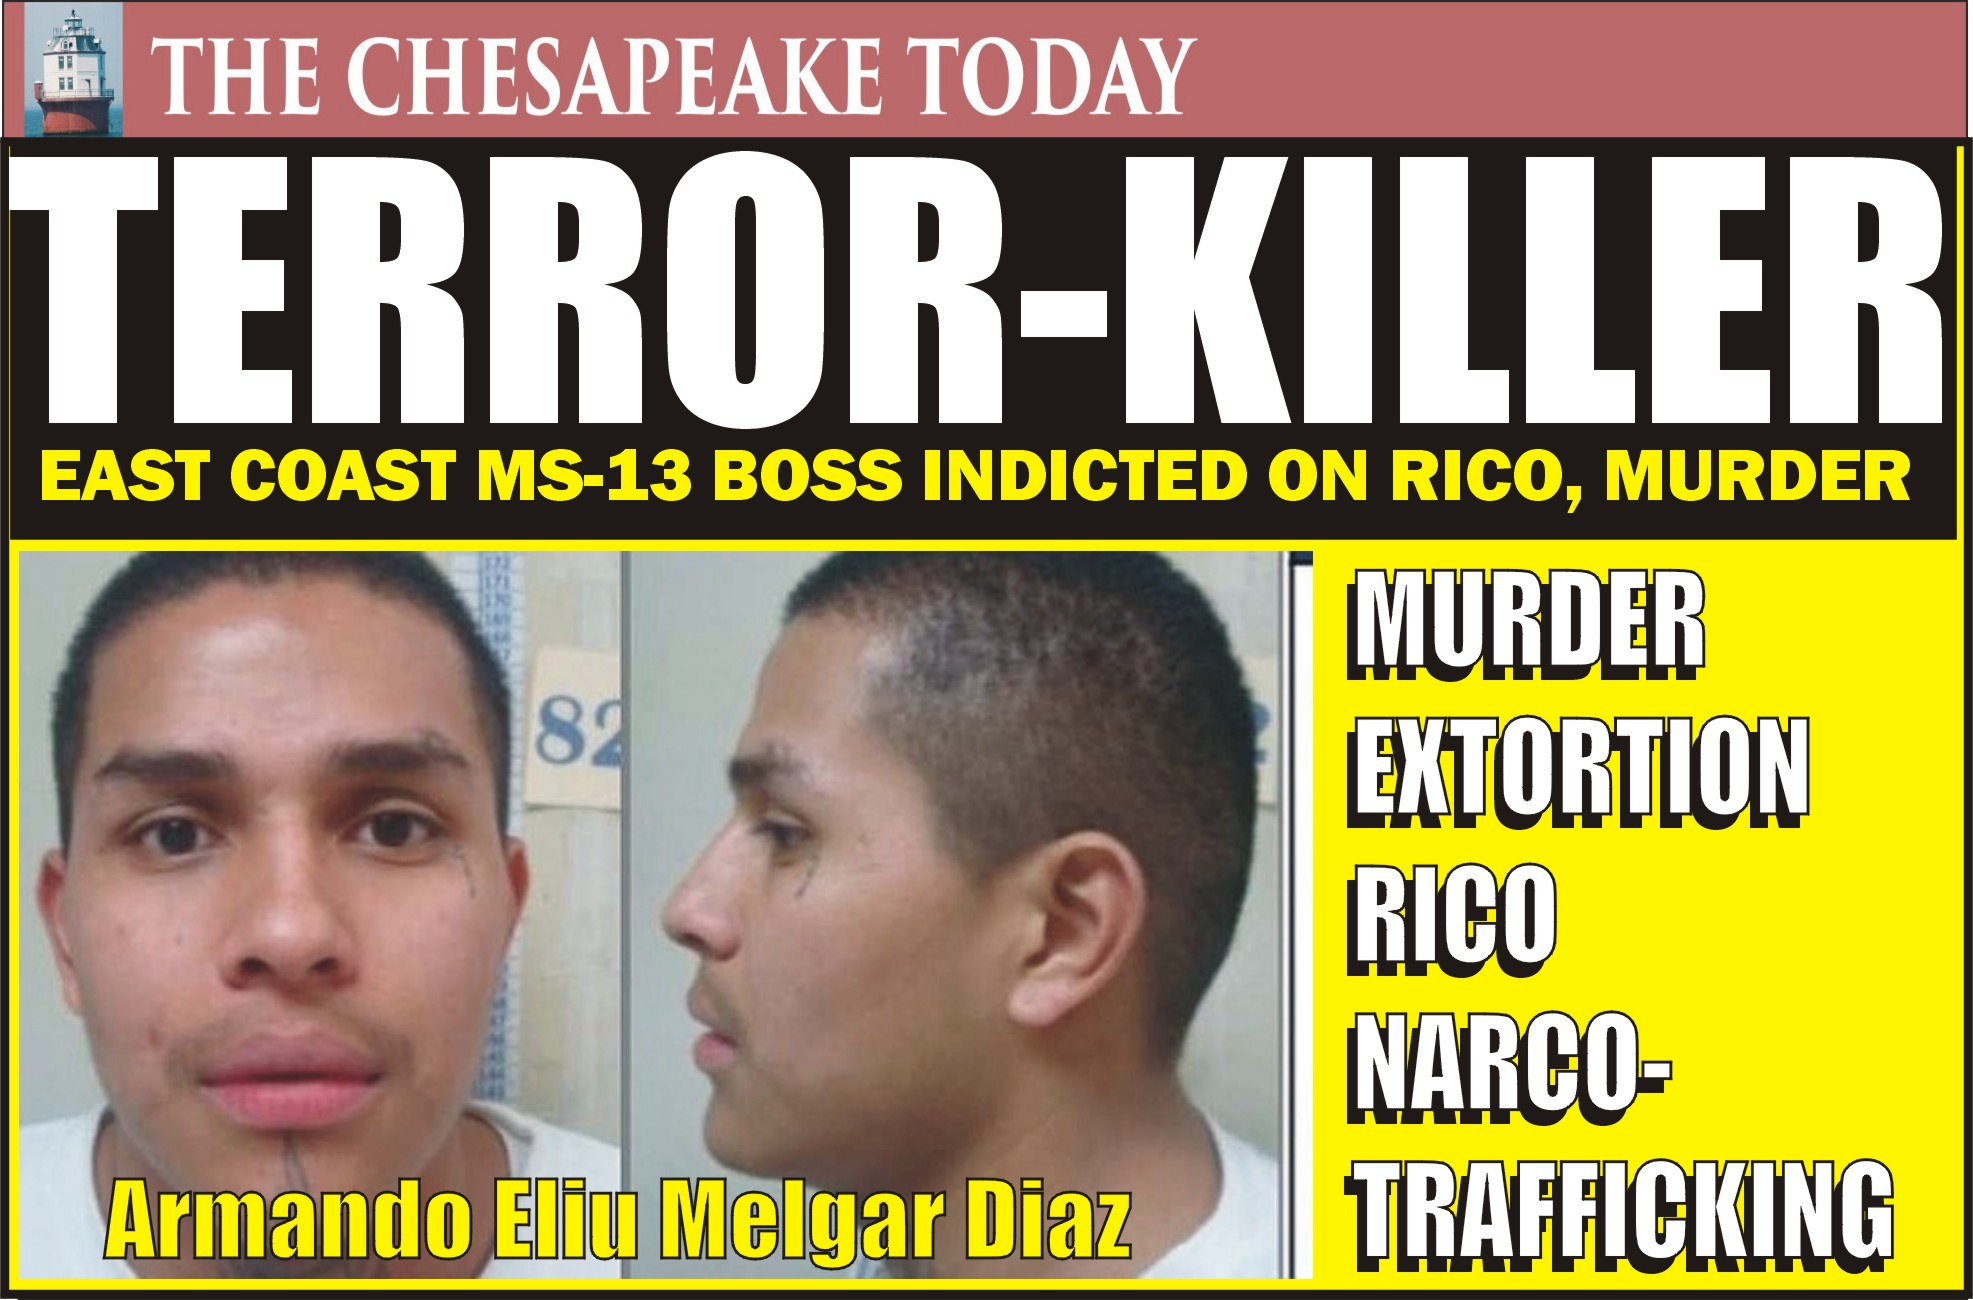 TERRORISM:  MS-13 Gang Leader Armando Diaz in El Salvador Charged with RICO, Murder, and Terrorism Offenses